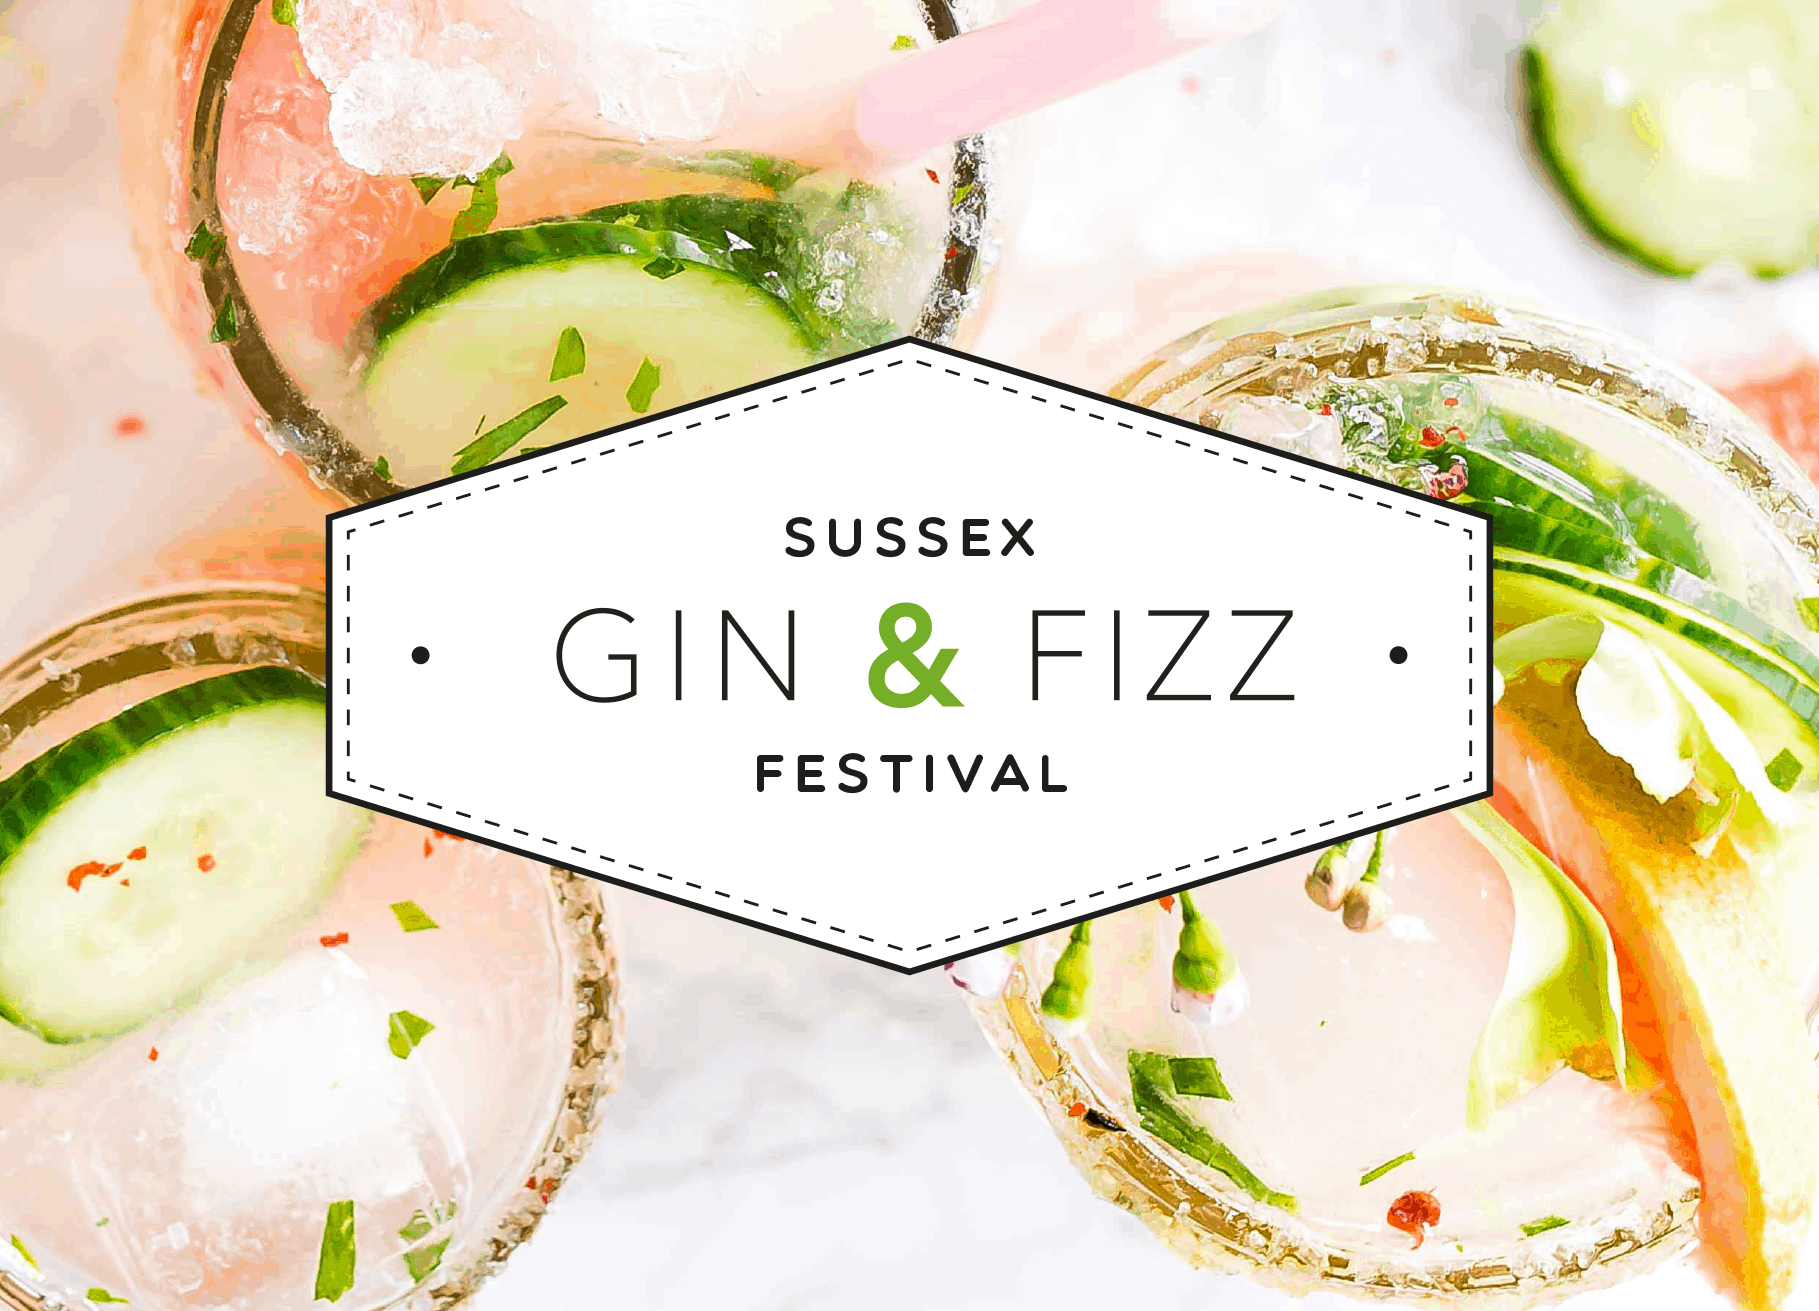 Sussex Gin & Fizz Festival poster